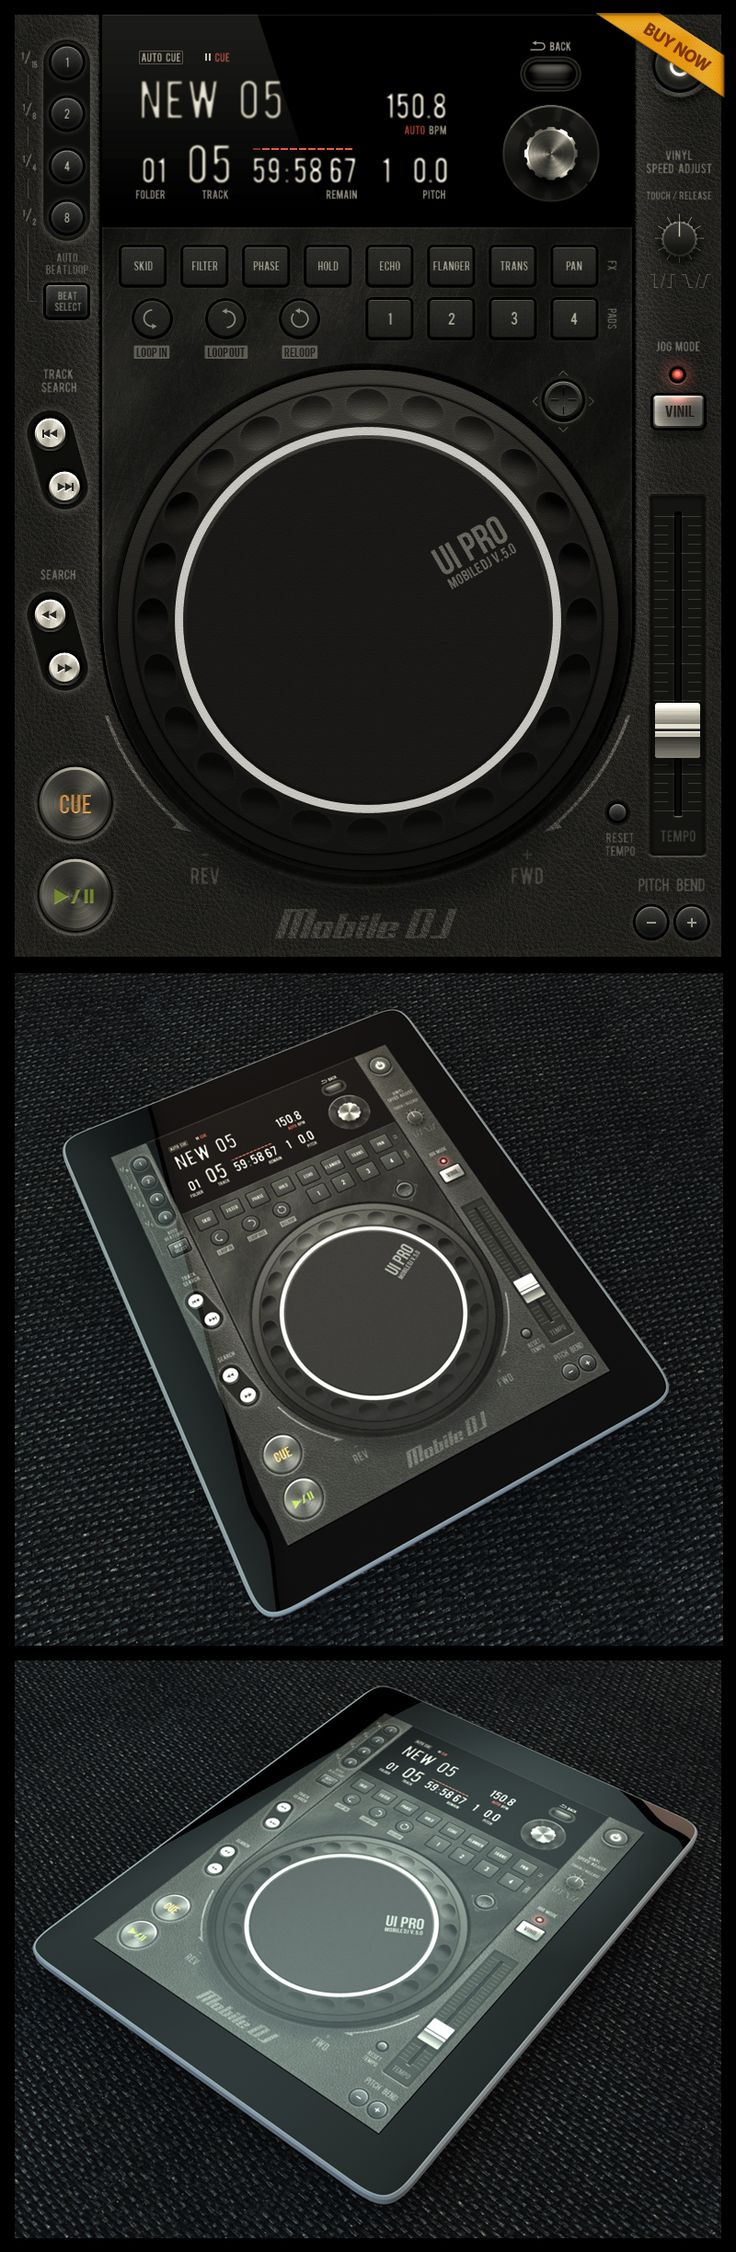 Mobile DJ Tablet #ui #ios #iPad | Design Inspiration